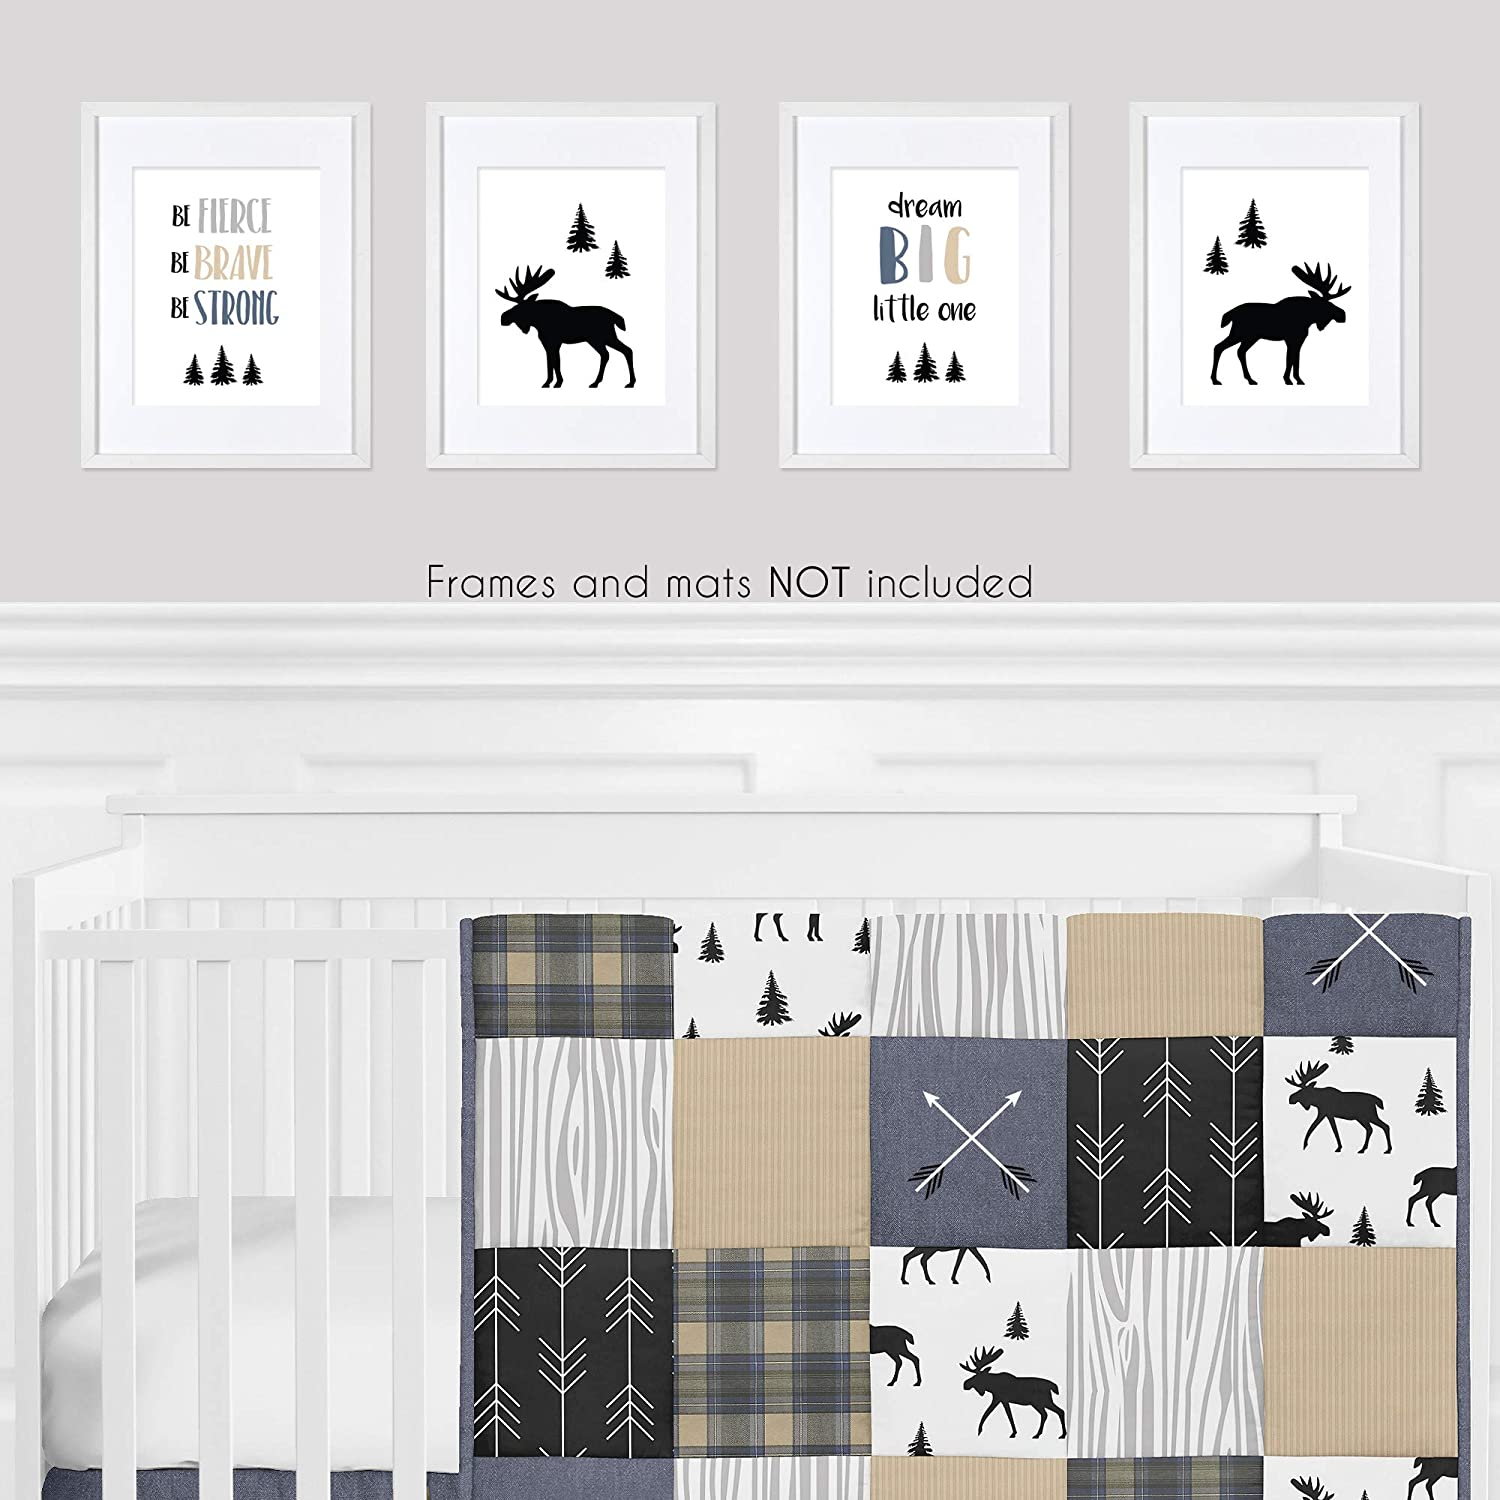 and Kids for Rustic Patch Collection Sweet Jojo Designs Blue Tan Grey and Black Woodland Moose Wall Art Prints Room Decor for Baby Nursery Set of 4 Dream Big Little One